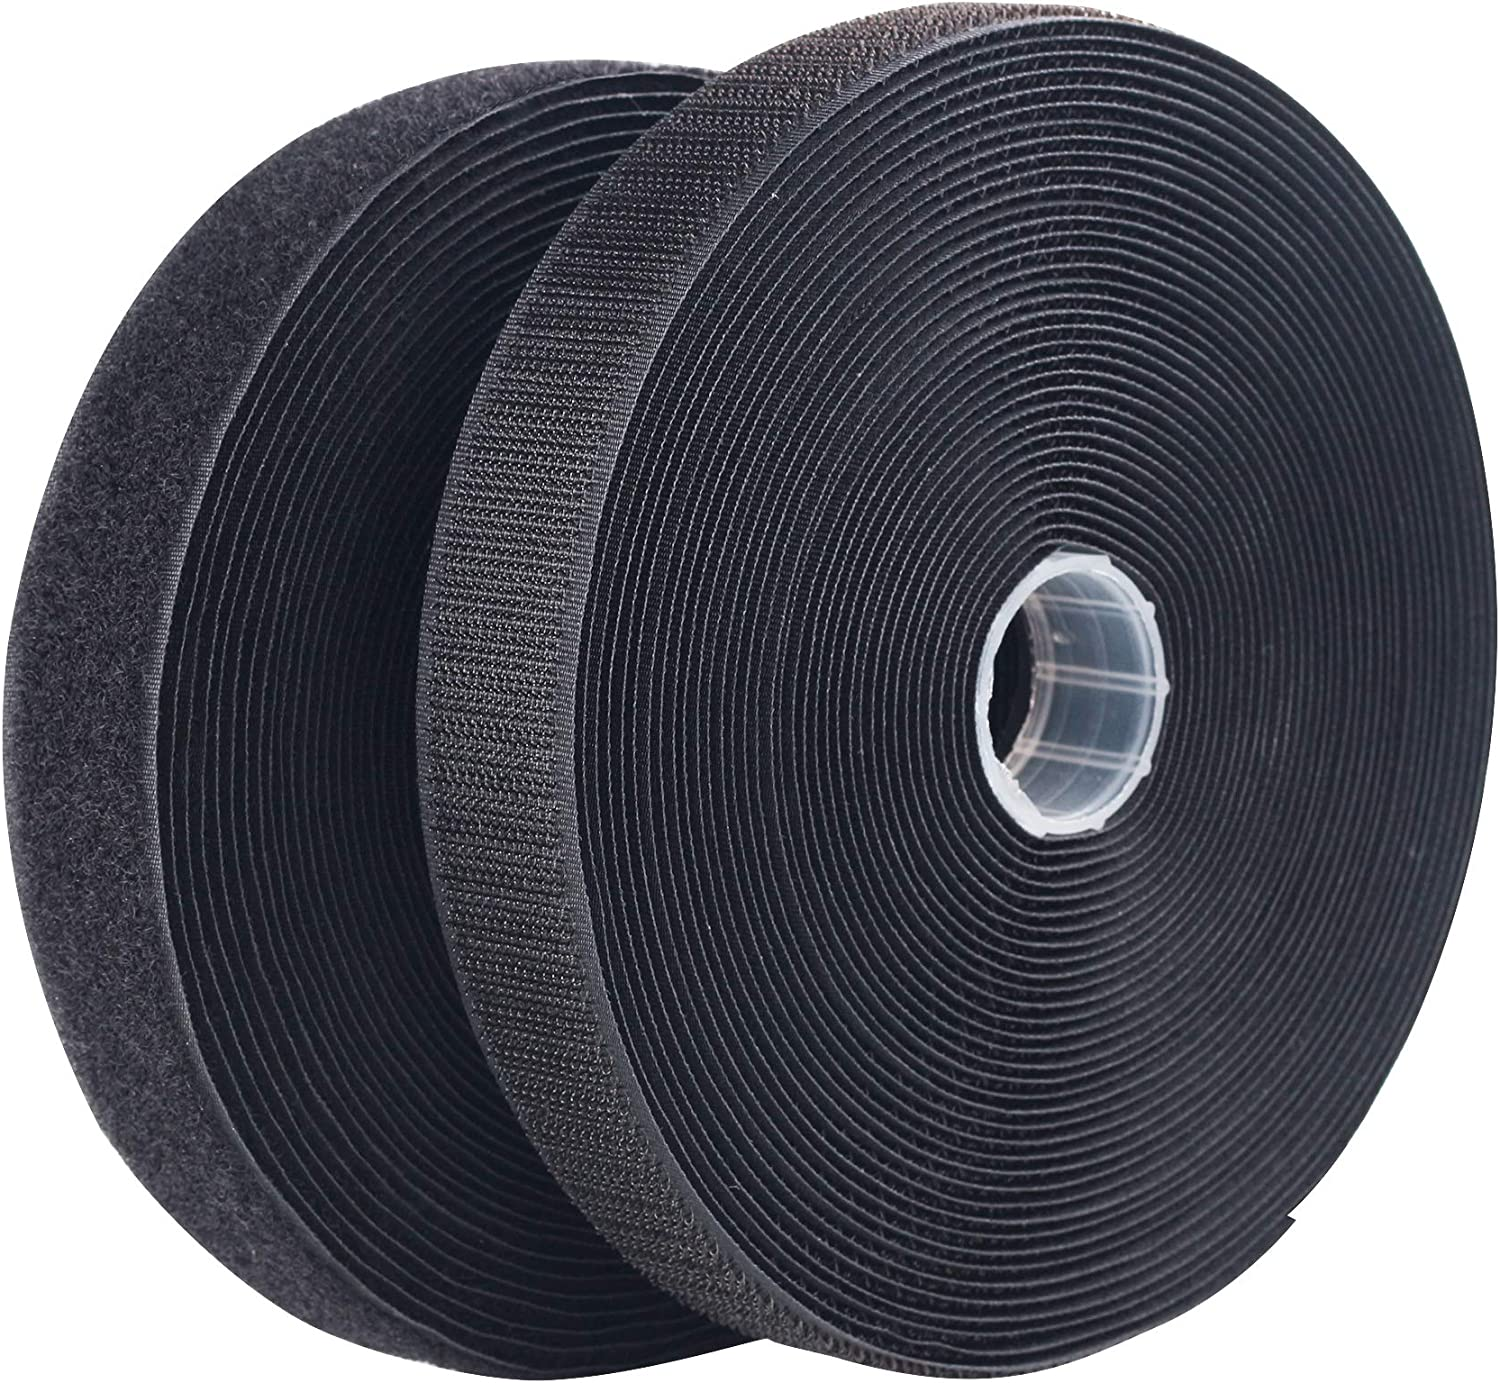 NHTB33 LLPT Sew On Hook and Loop Tape Nylon Fabric 1 Inch x 33 Each Roll Industrial Strength No Adhesive Strong Hook Loop Strip for Sewing on DIY Cloth Shoe Curtain Bag Sport Gears Color Black